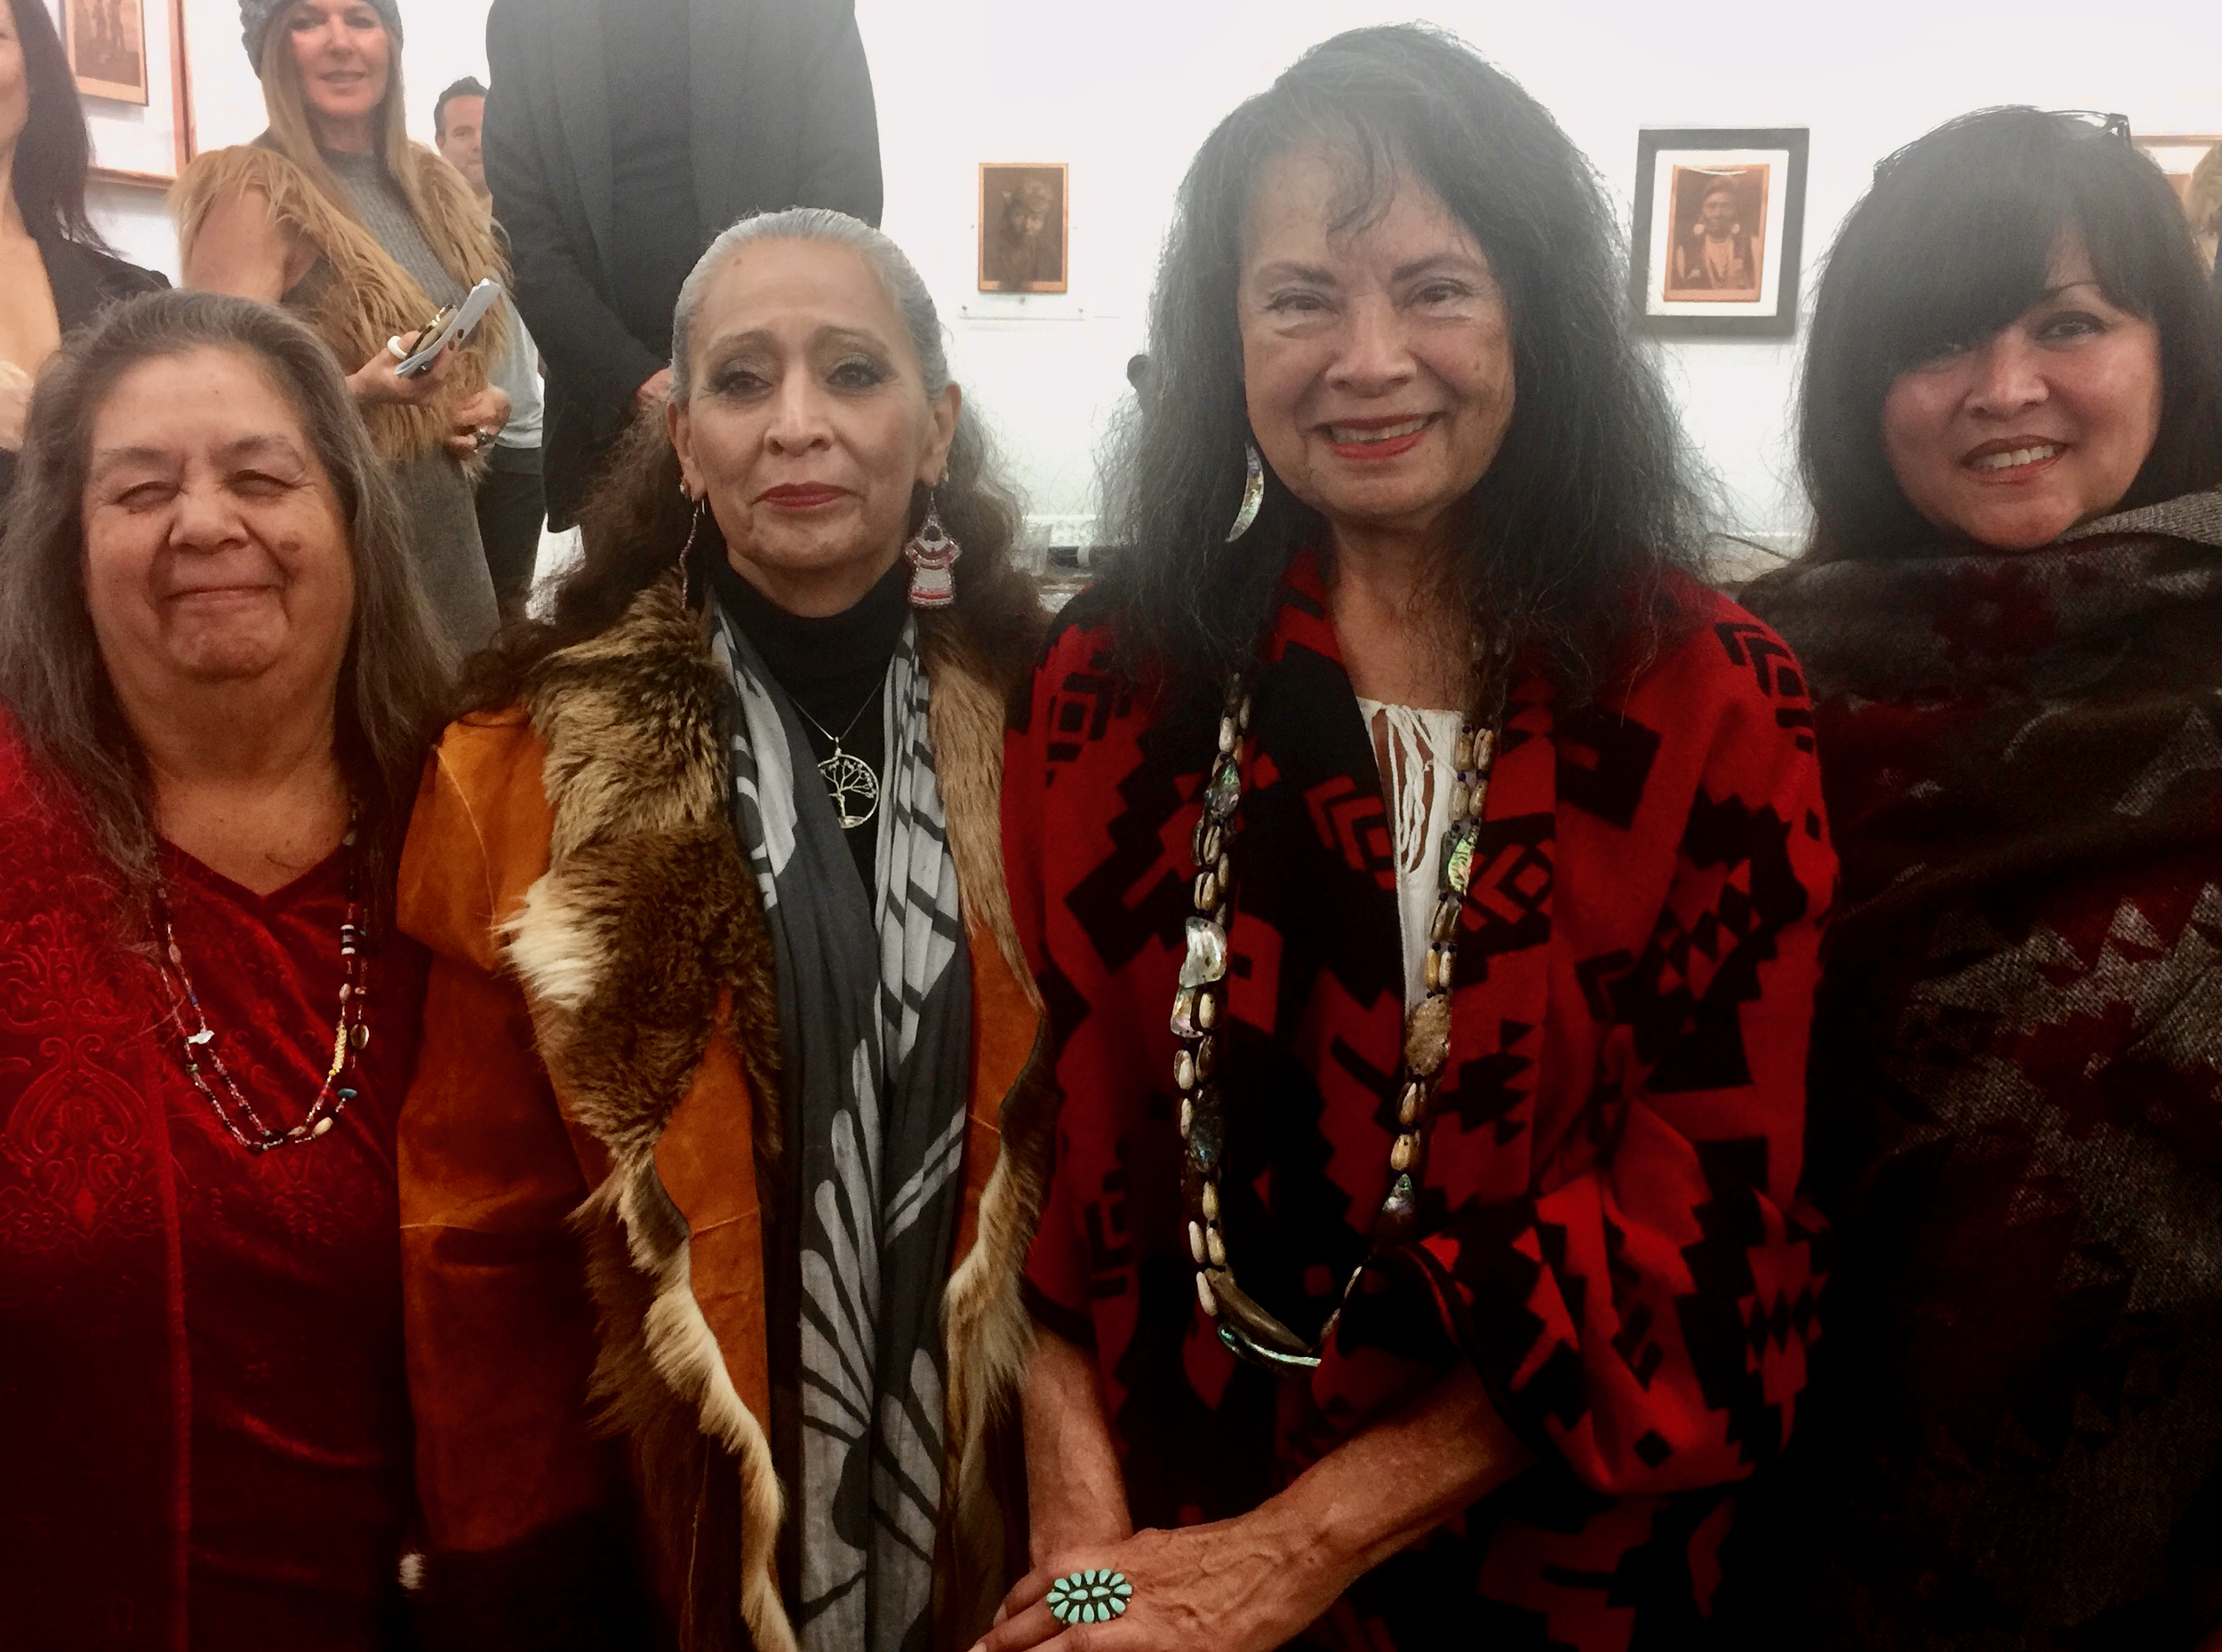 Julia Bogany Tongva Elder, LaDonna Brave Bull Allard Standing Rock Sioux Historian, Gloria Arrellanes Tongva Elder and Luhui Isha, Barbareno Chumash and Cultural Resources Director Wishtoyo Chumash Foundation